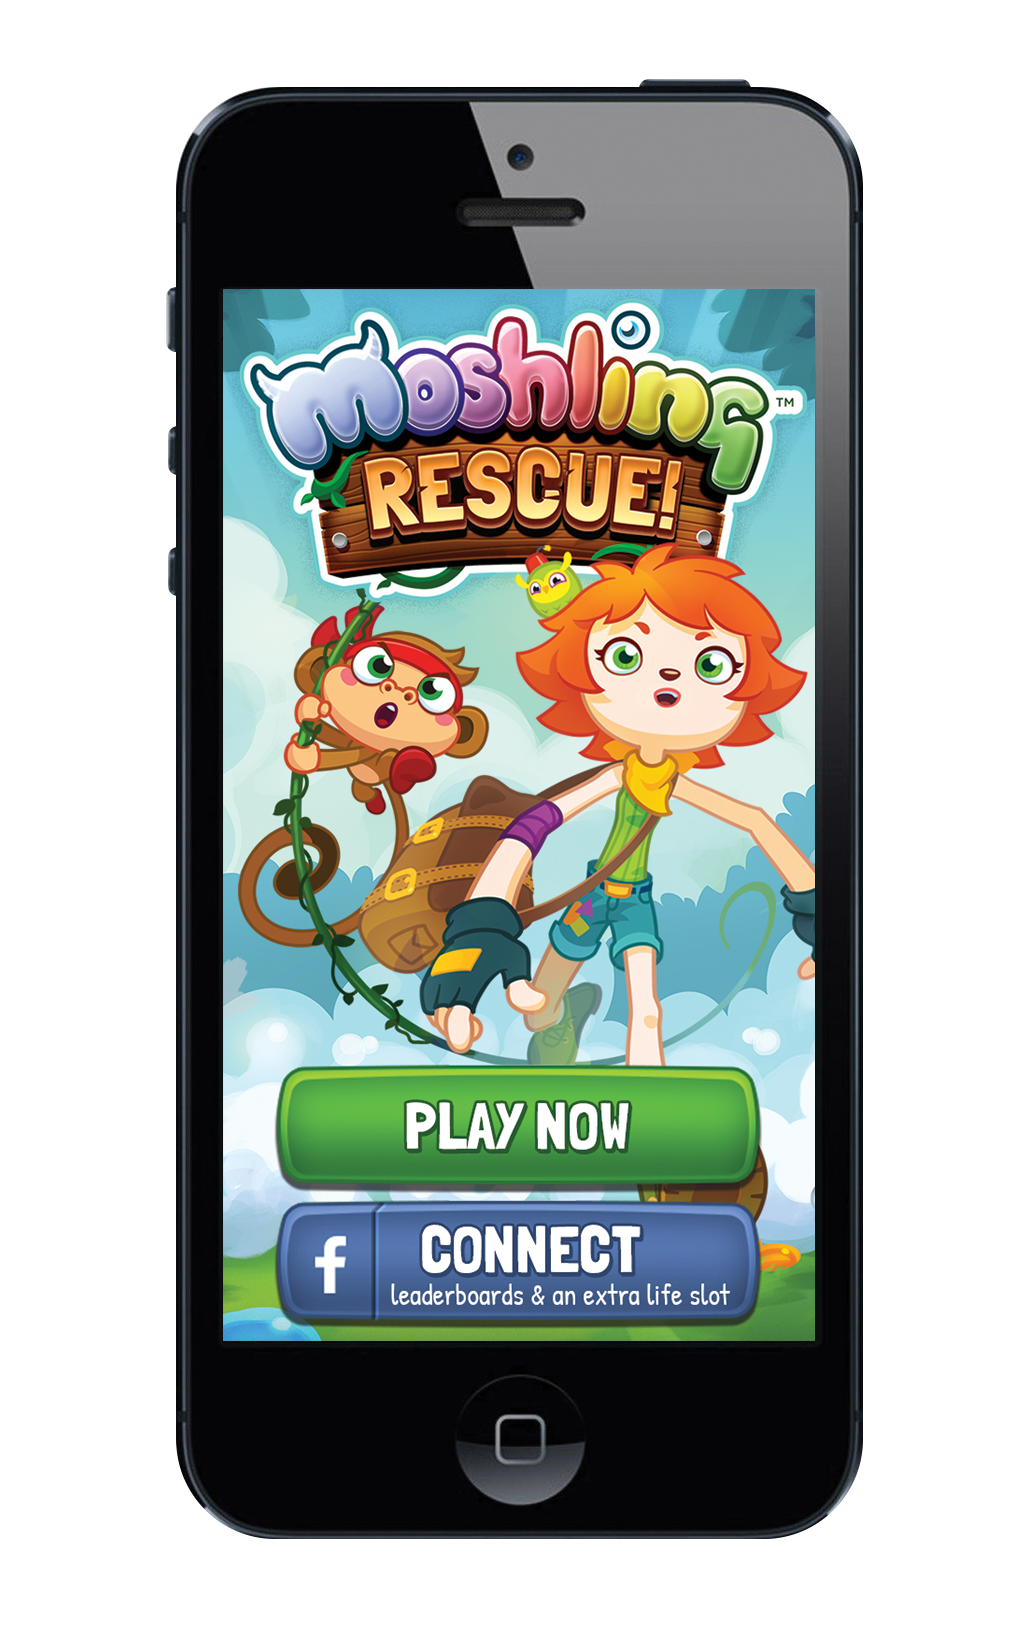 Moshling Rescue